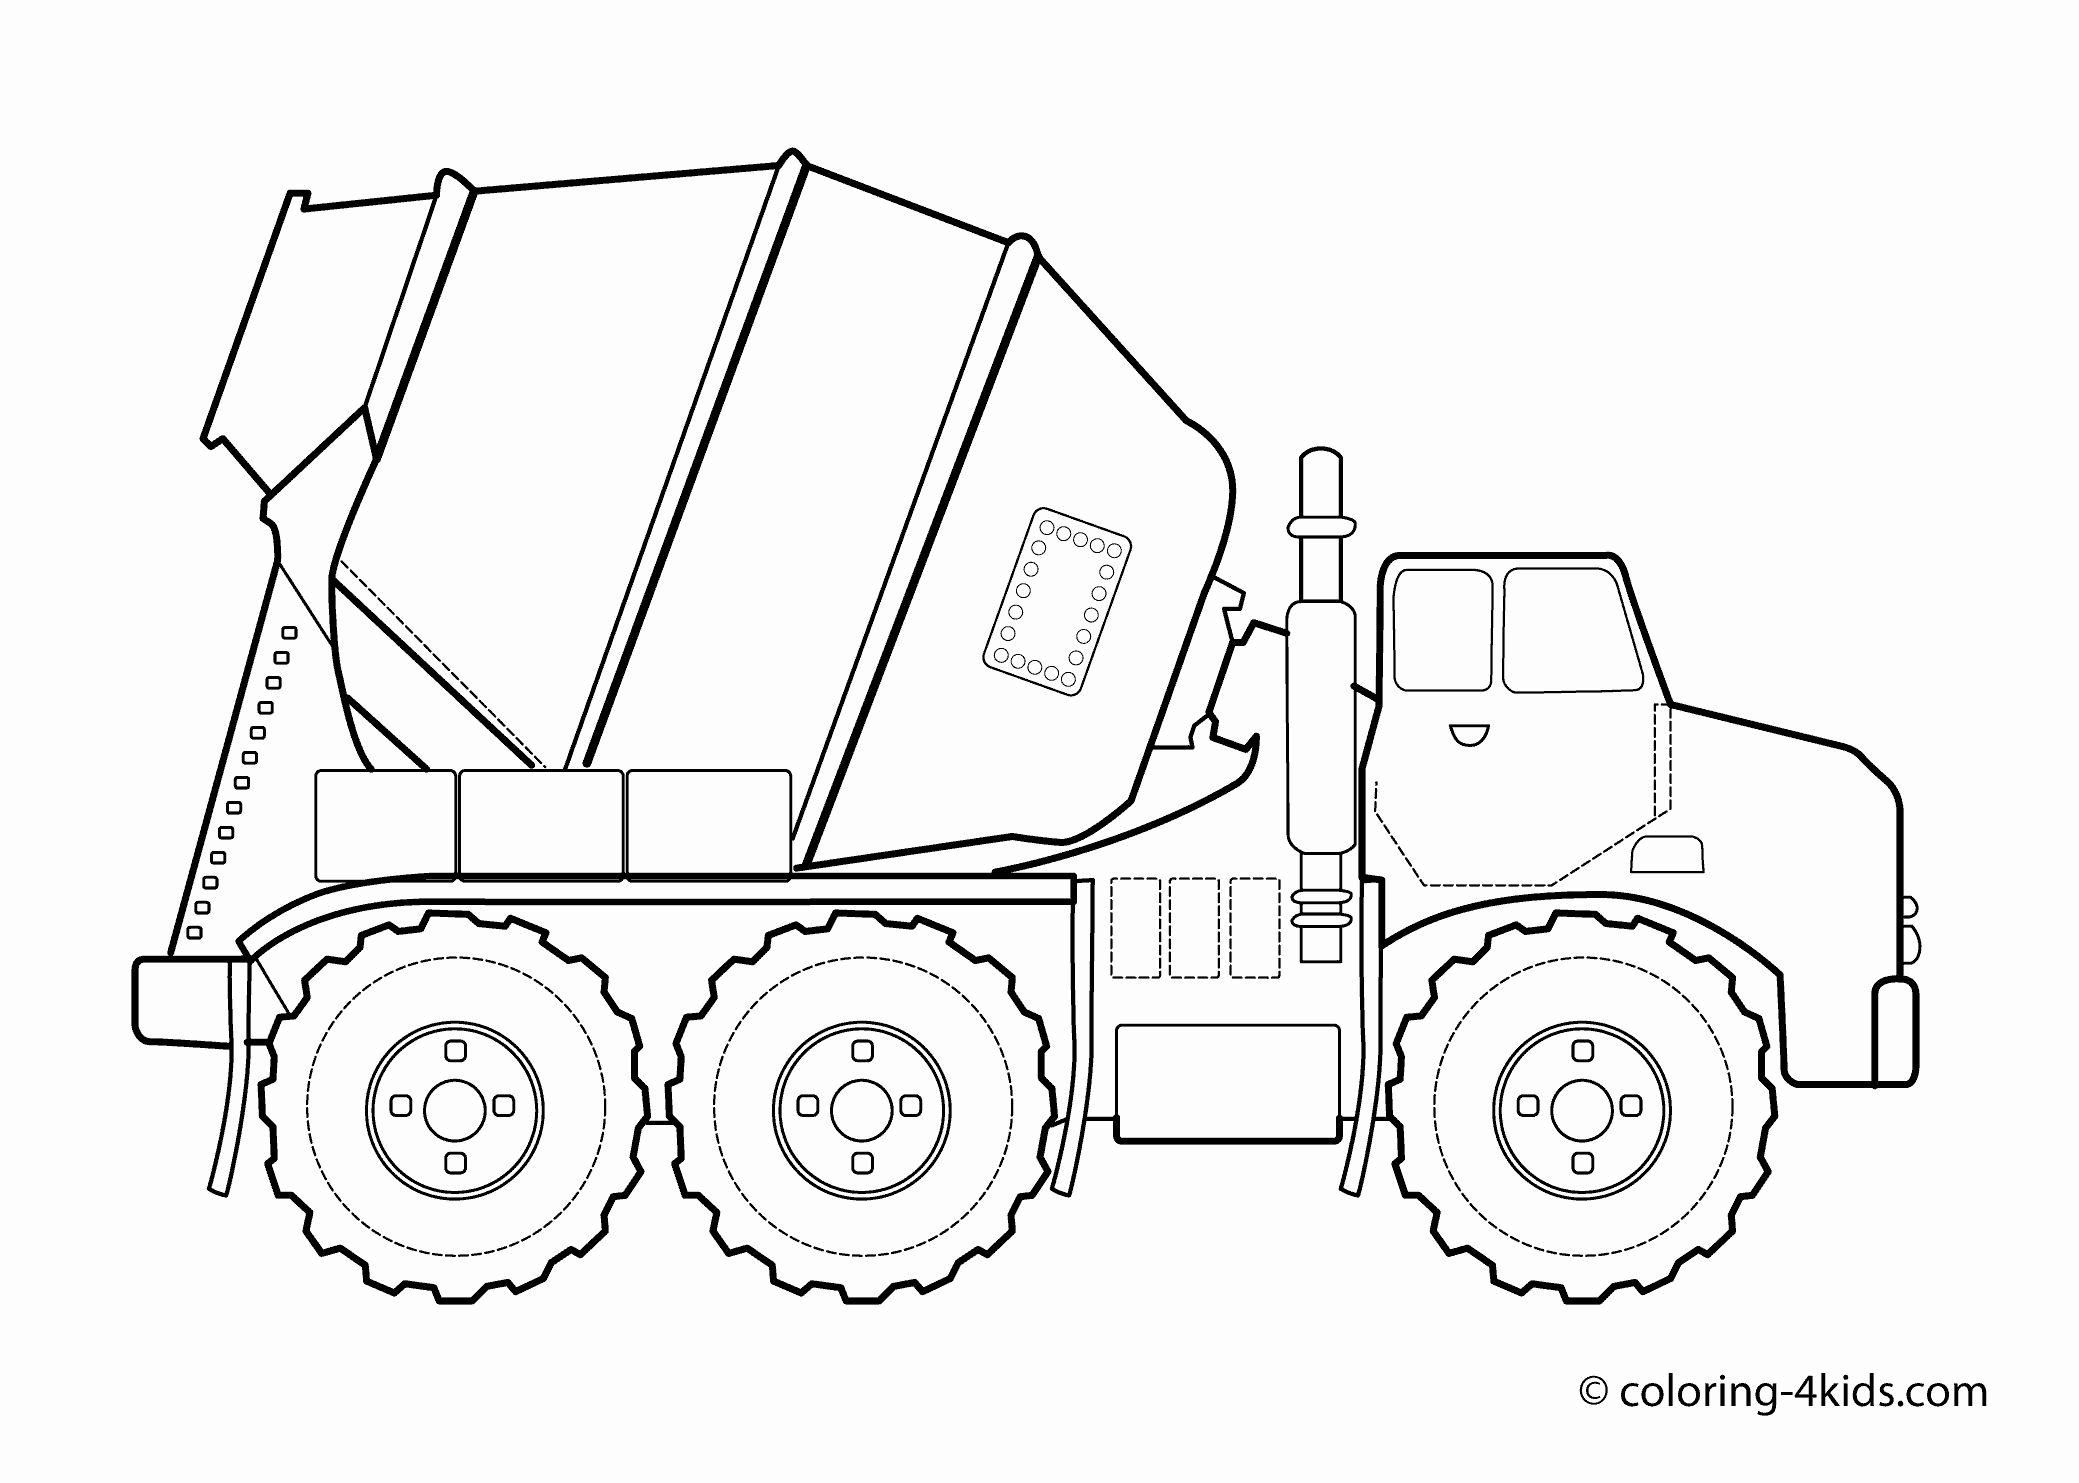 Transport Coloring Worksheet Printable Coloring Pages For Kids